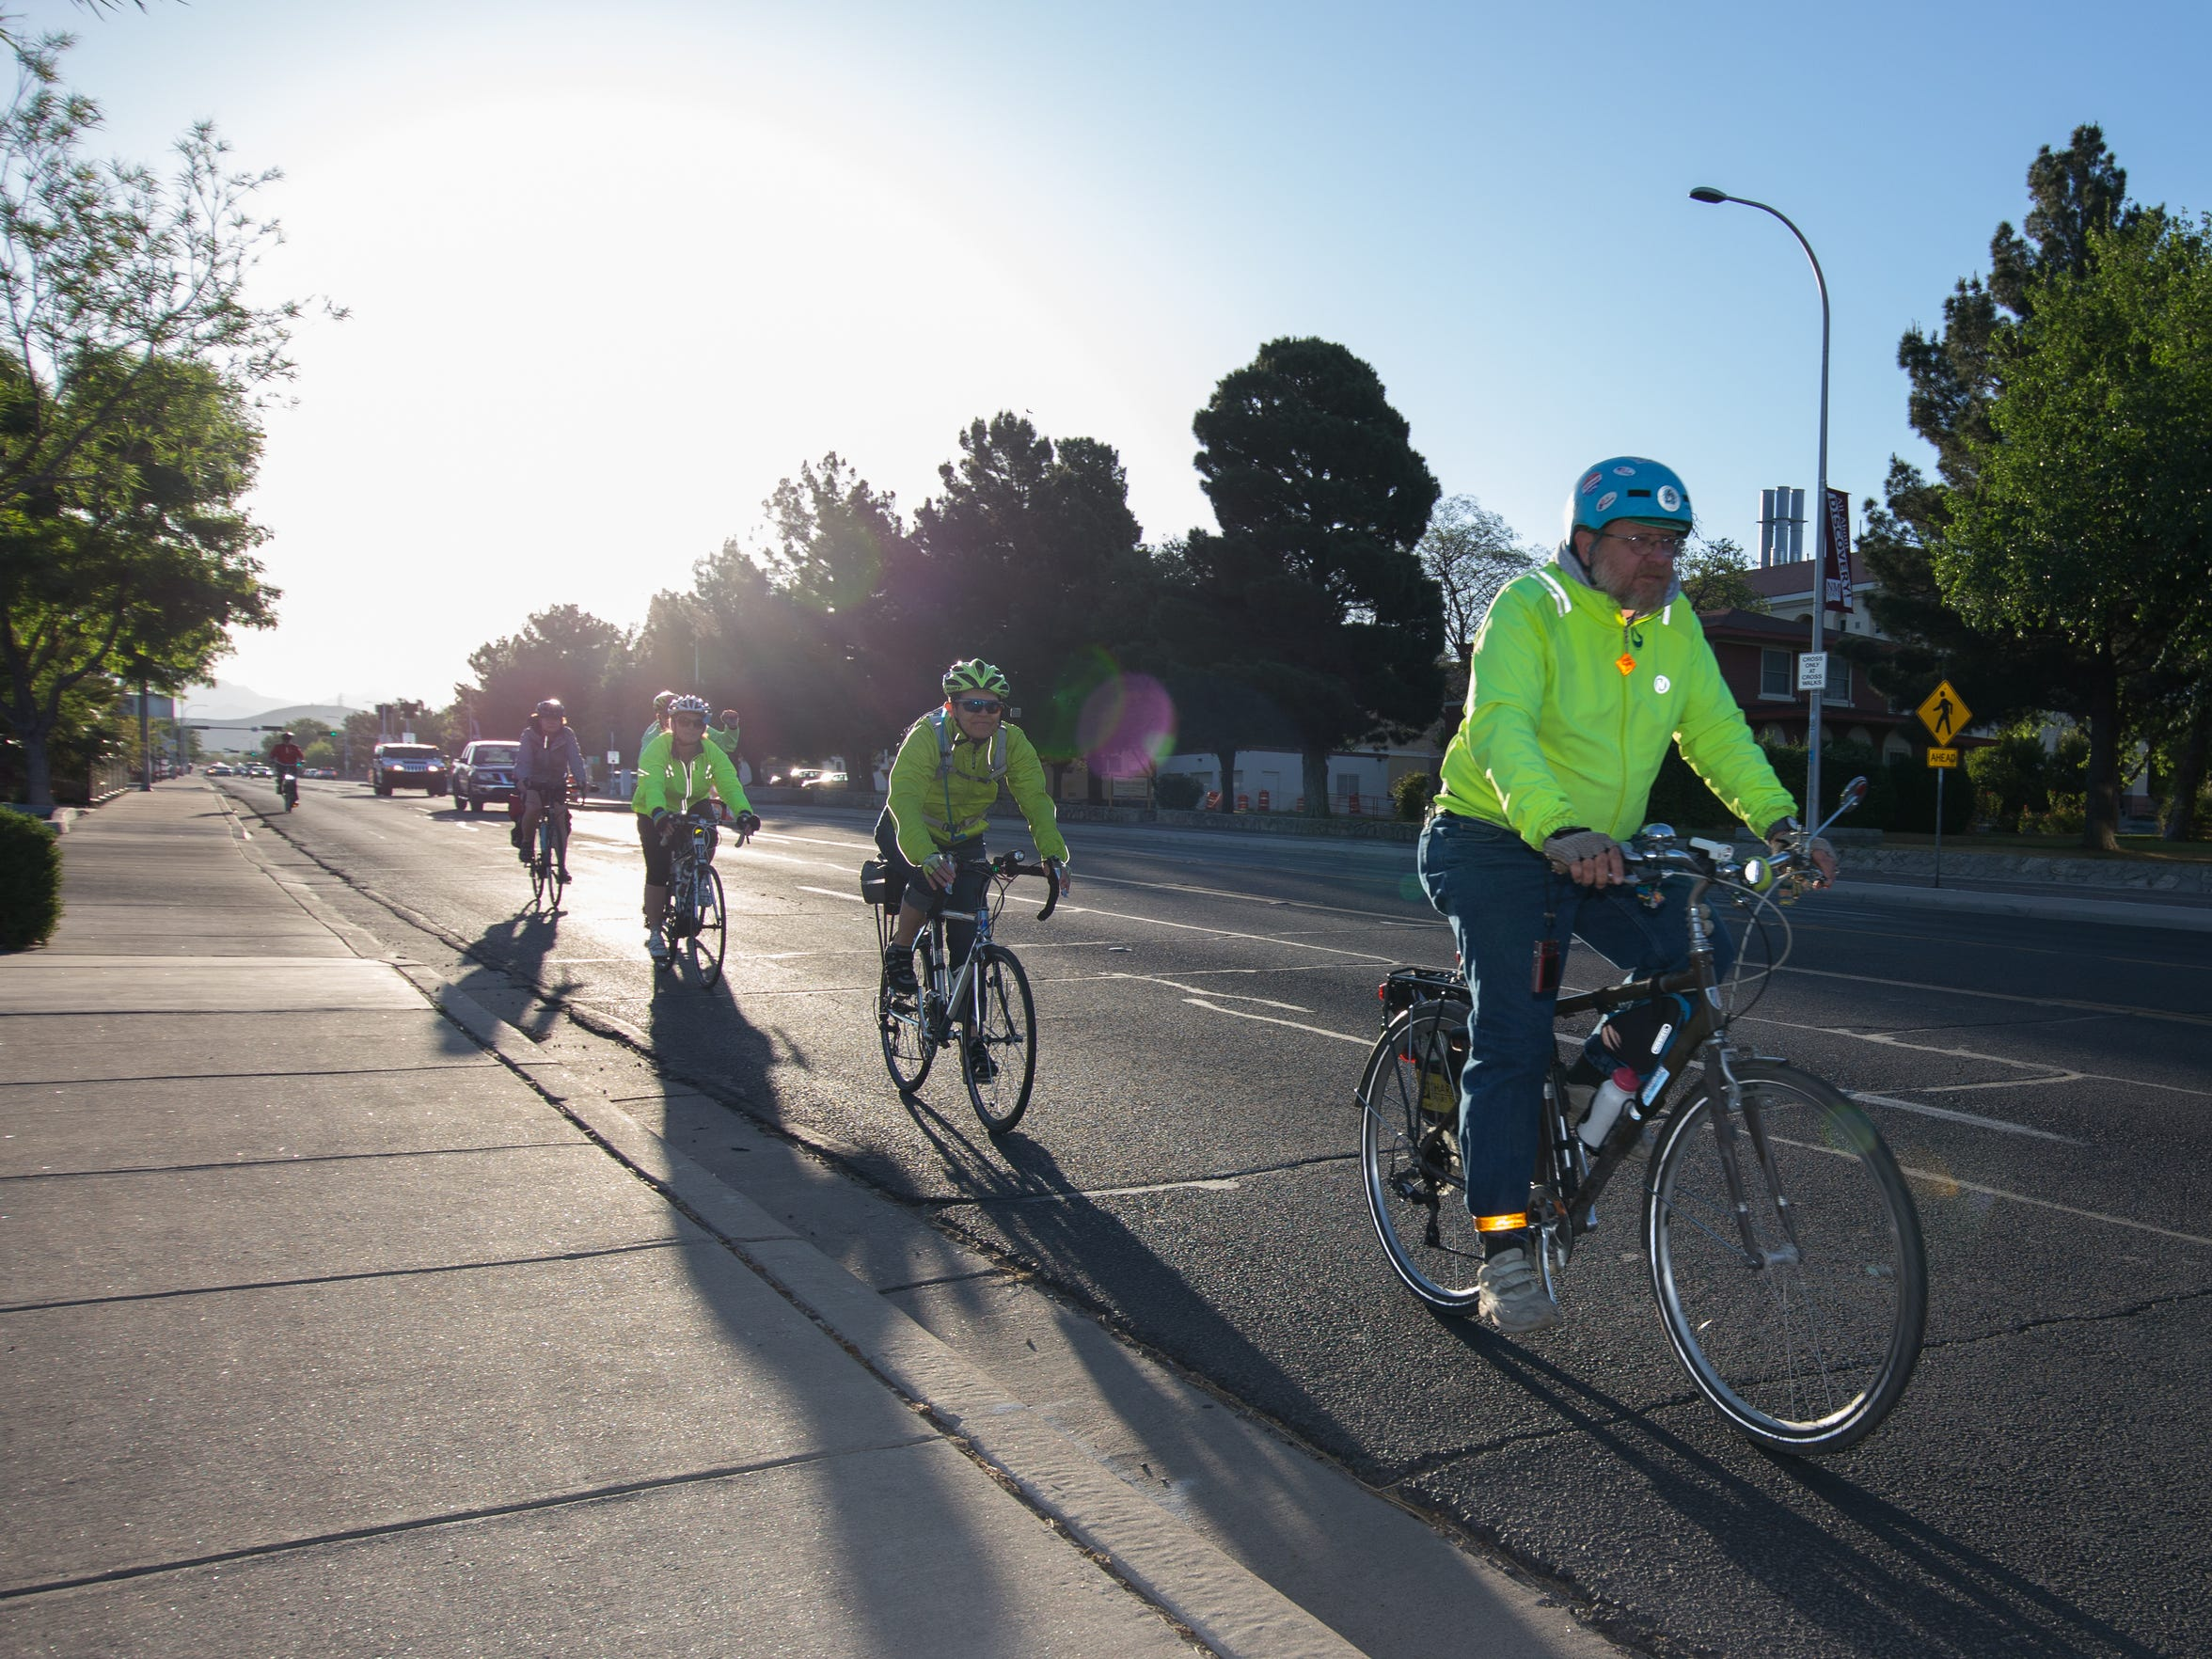 George Pearson, certified instructor of the League of American Bicyclists leads a line of cyclists on the Share the Road Visibility Ride down University Avenue.